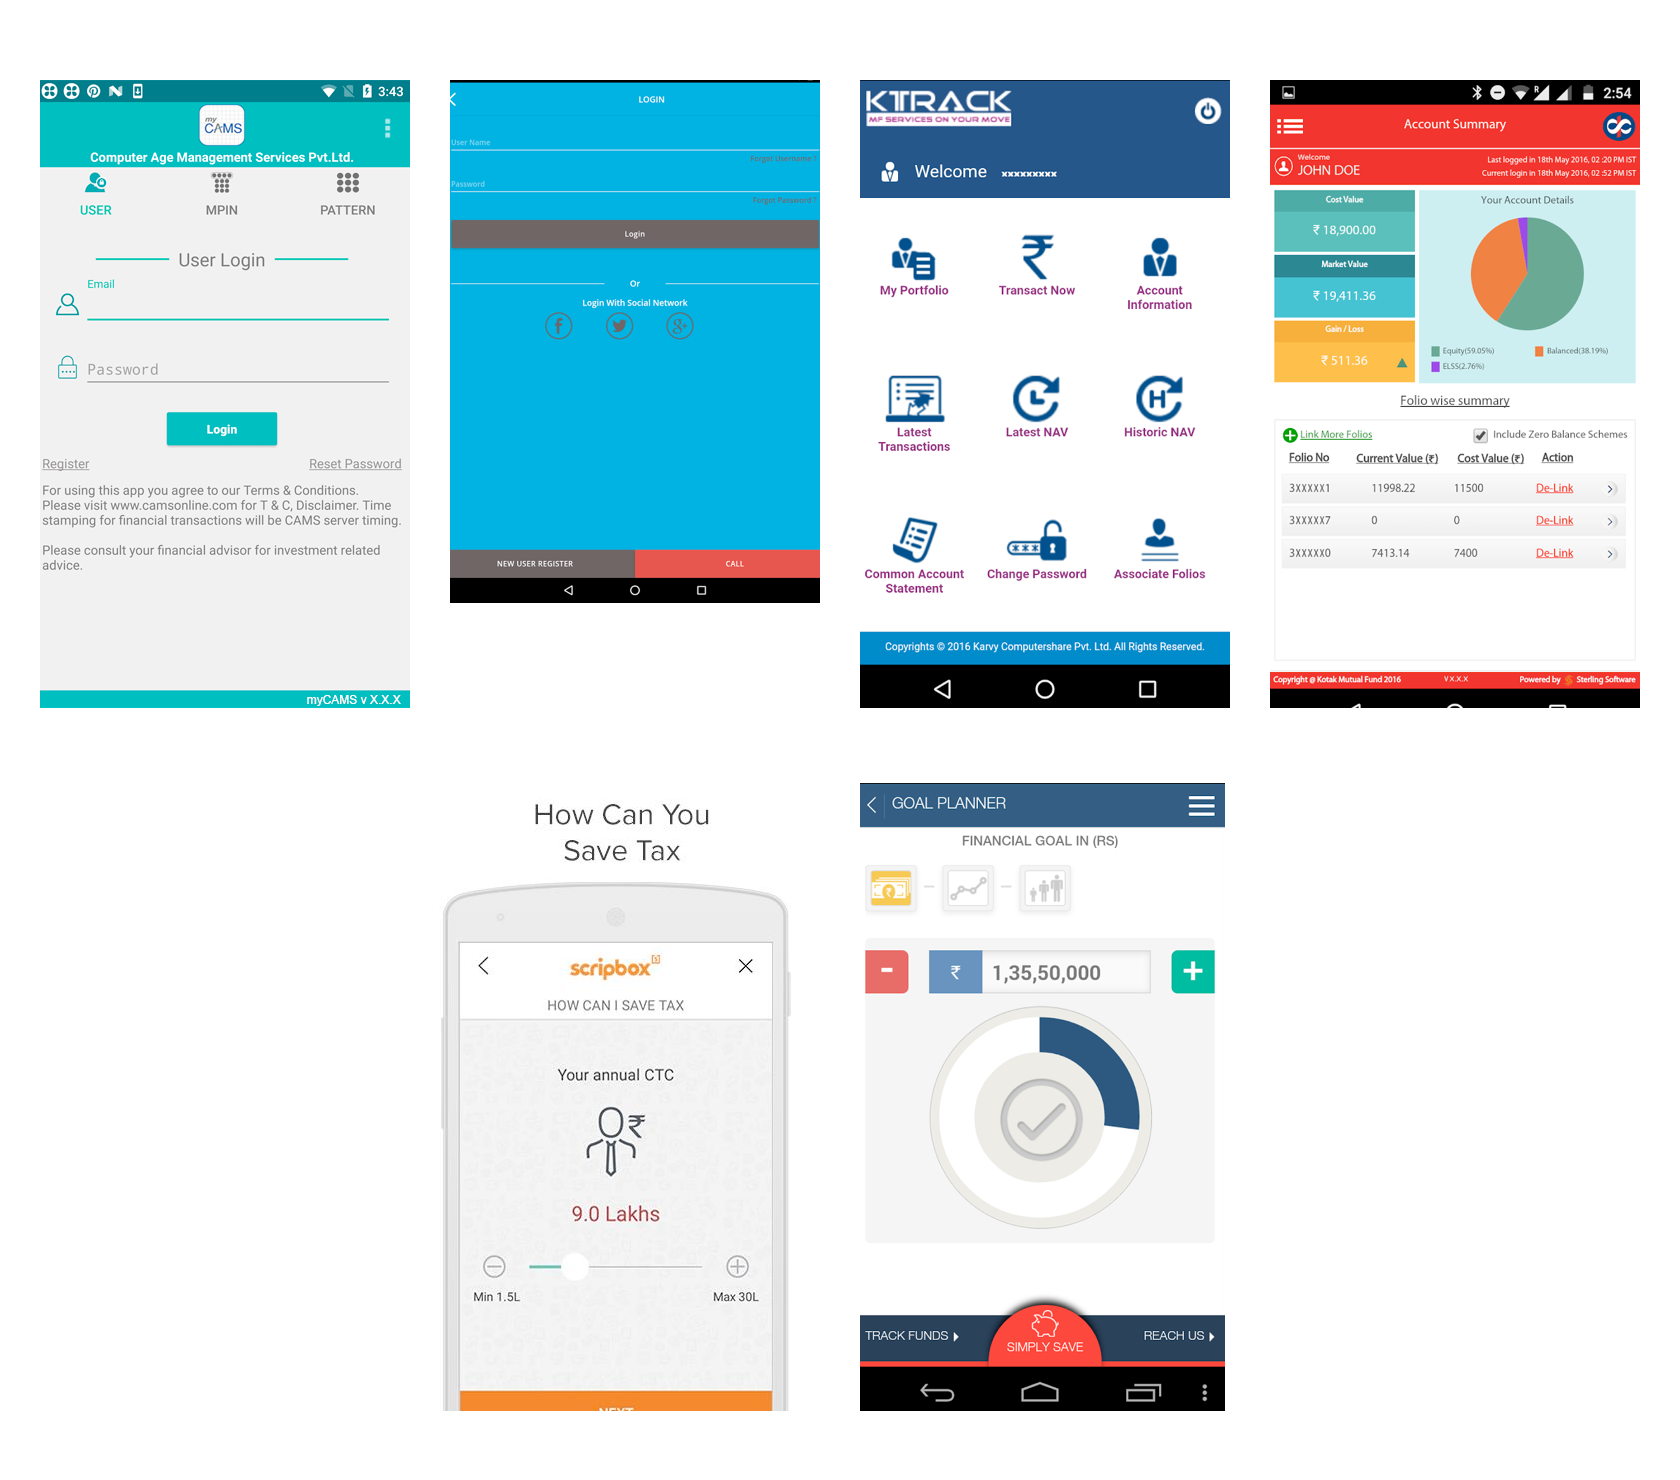 financial app design trends are improving slowly